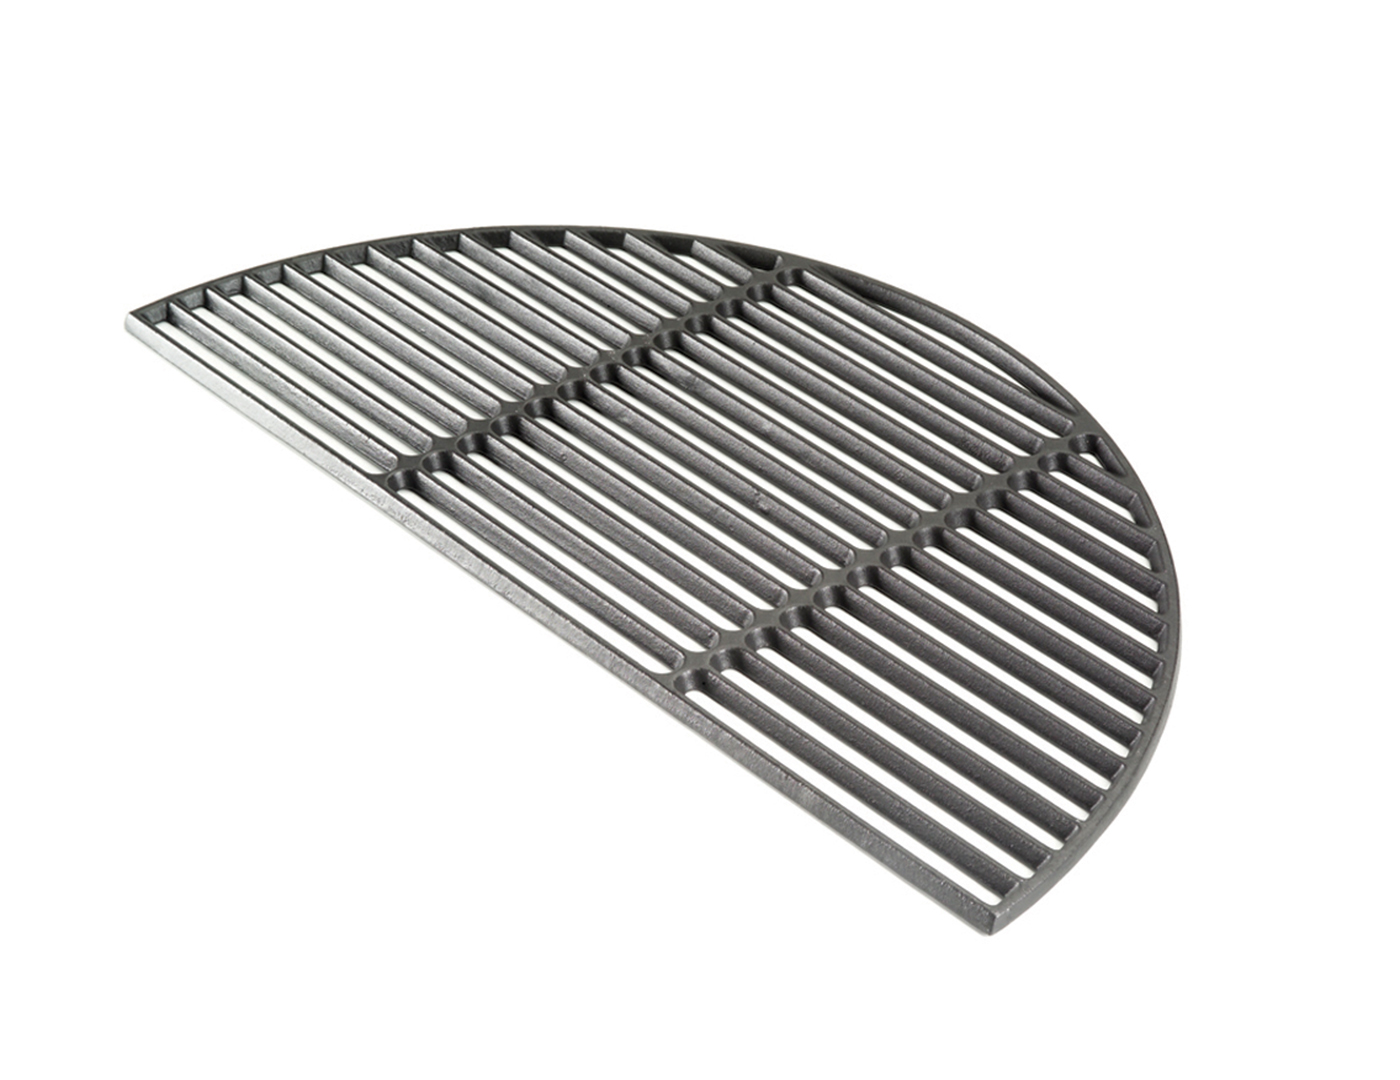 Half Moon Cast Iron Cooking Grid